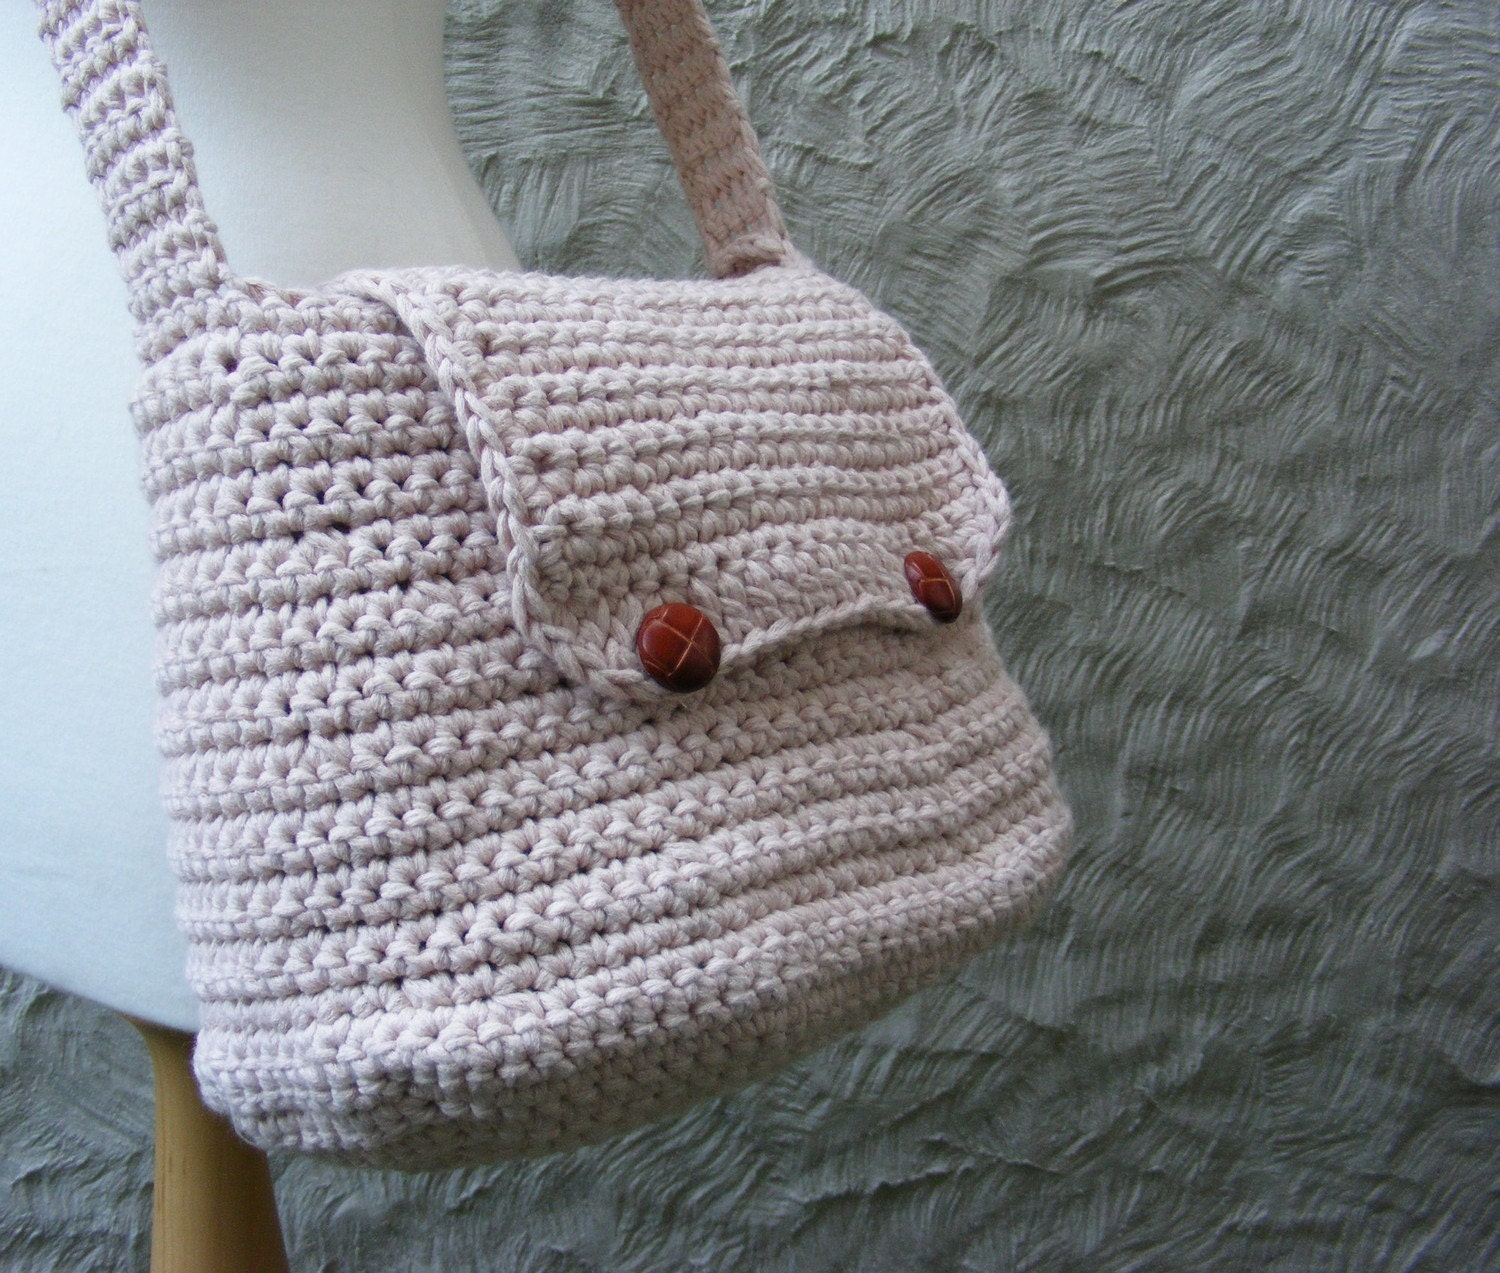 Bags And Purses Patterns : purse patterns free crochet bag and purse patterns little eyelash bag ...